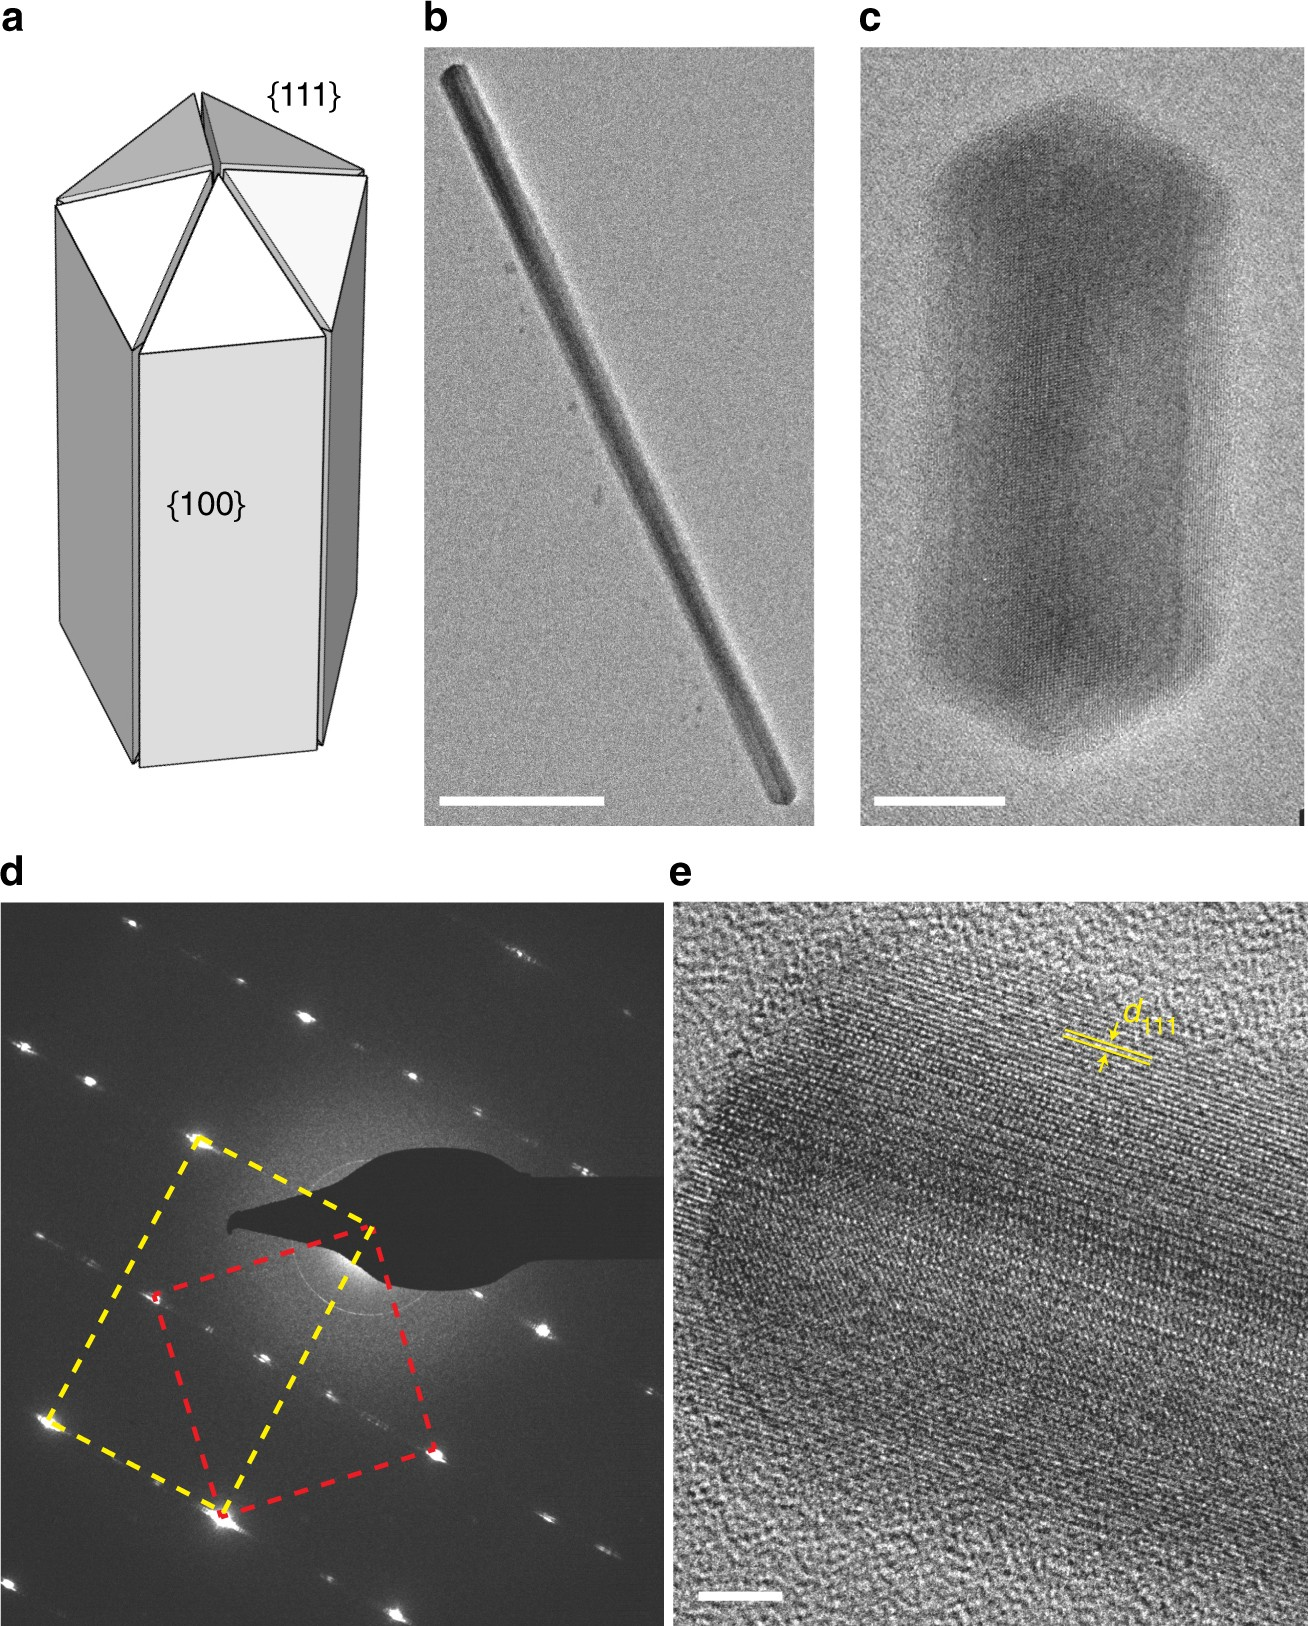 In situ visualization of solute driven phase coexistence within